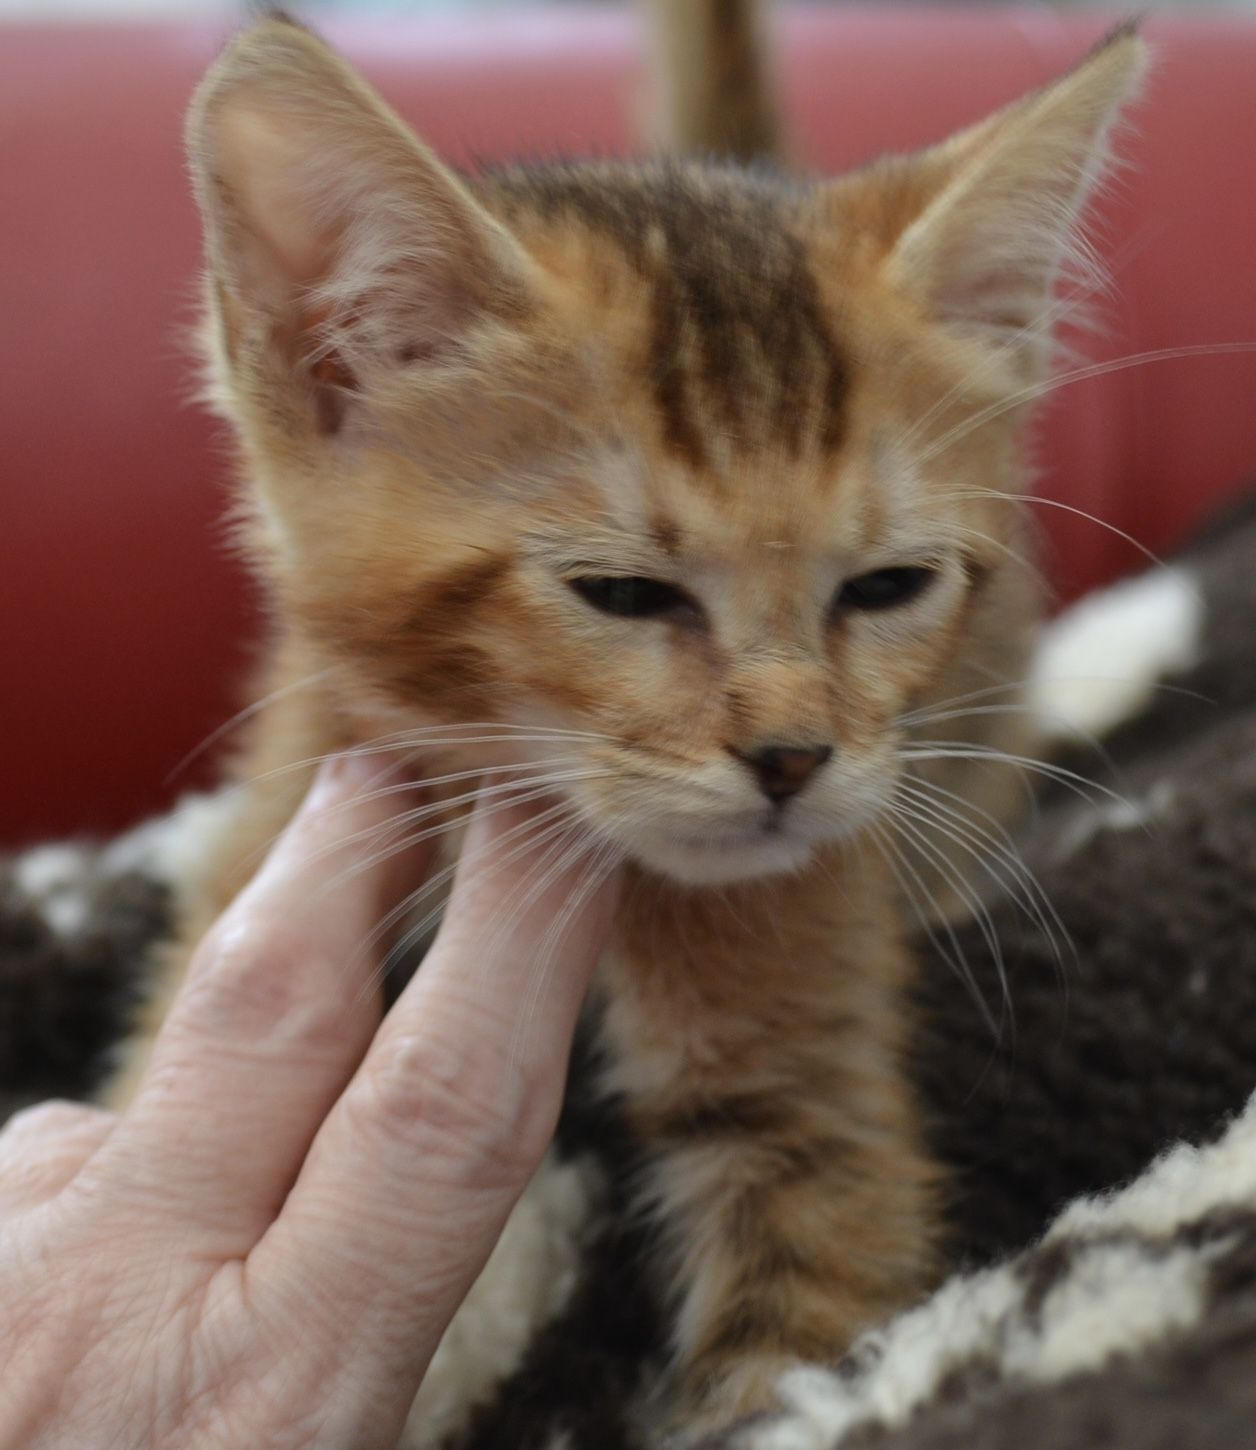 F2 generation Sand Cat Hybrid/Marguerite (With images